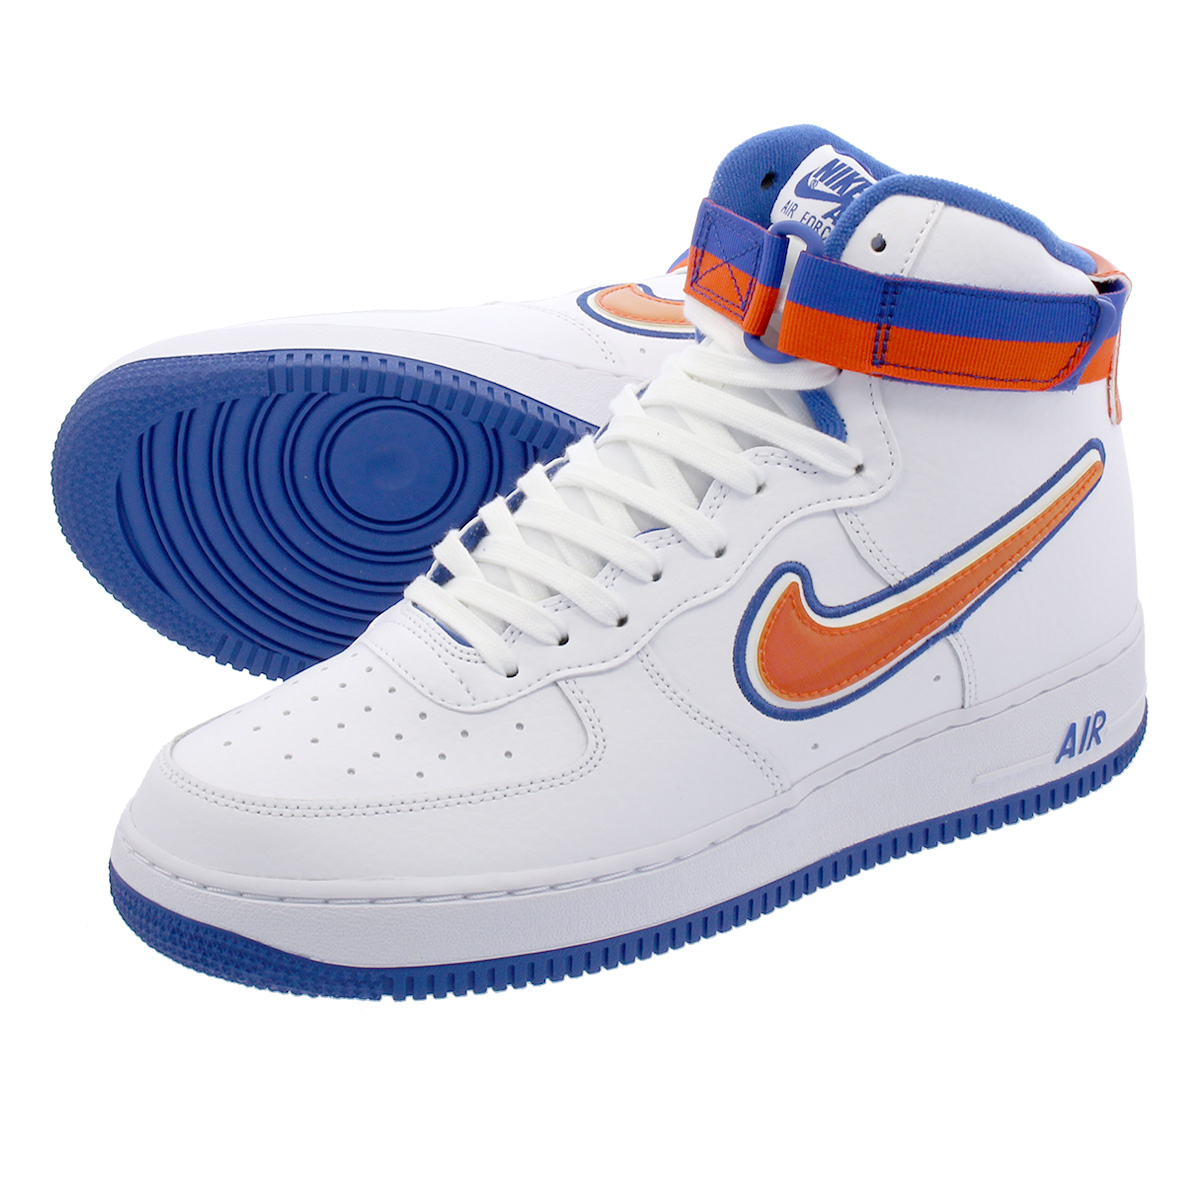 8eb48640130b9 LOWTEX PLUS  NIKE AIR FORCE 1 HIGH  07 LV8 SPORT Nike air force 1 high  07  LV8 sports WHITE TEAM ORANGE GAME ROYAL av3938-100